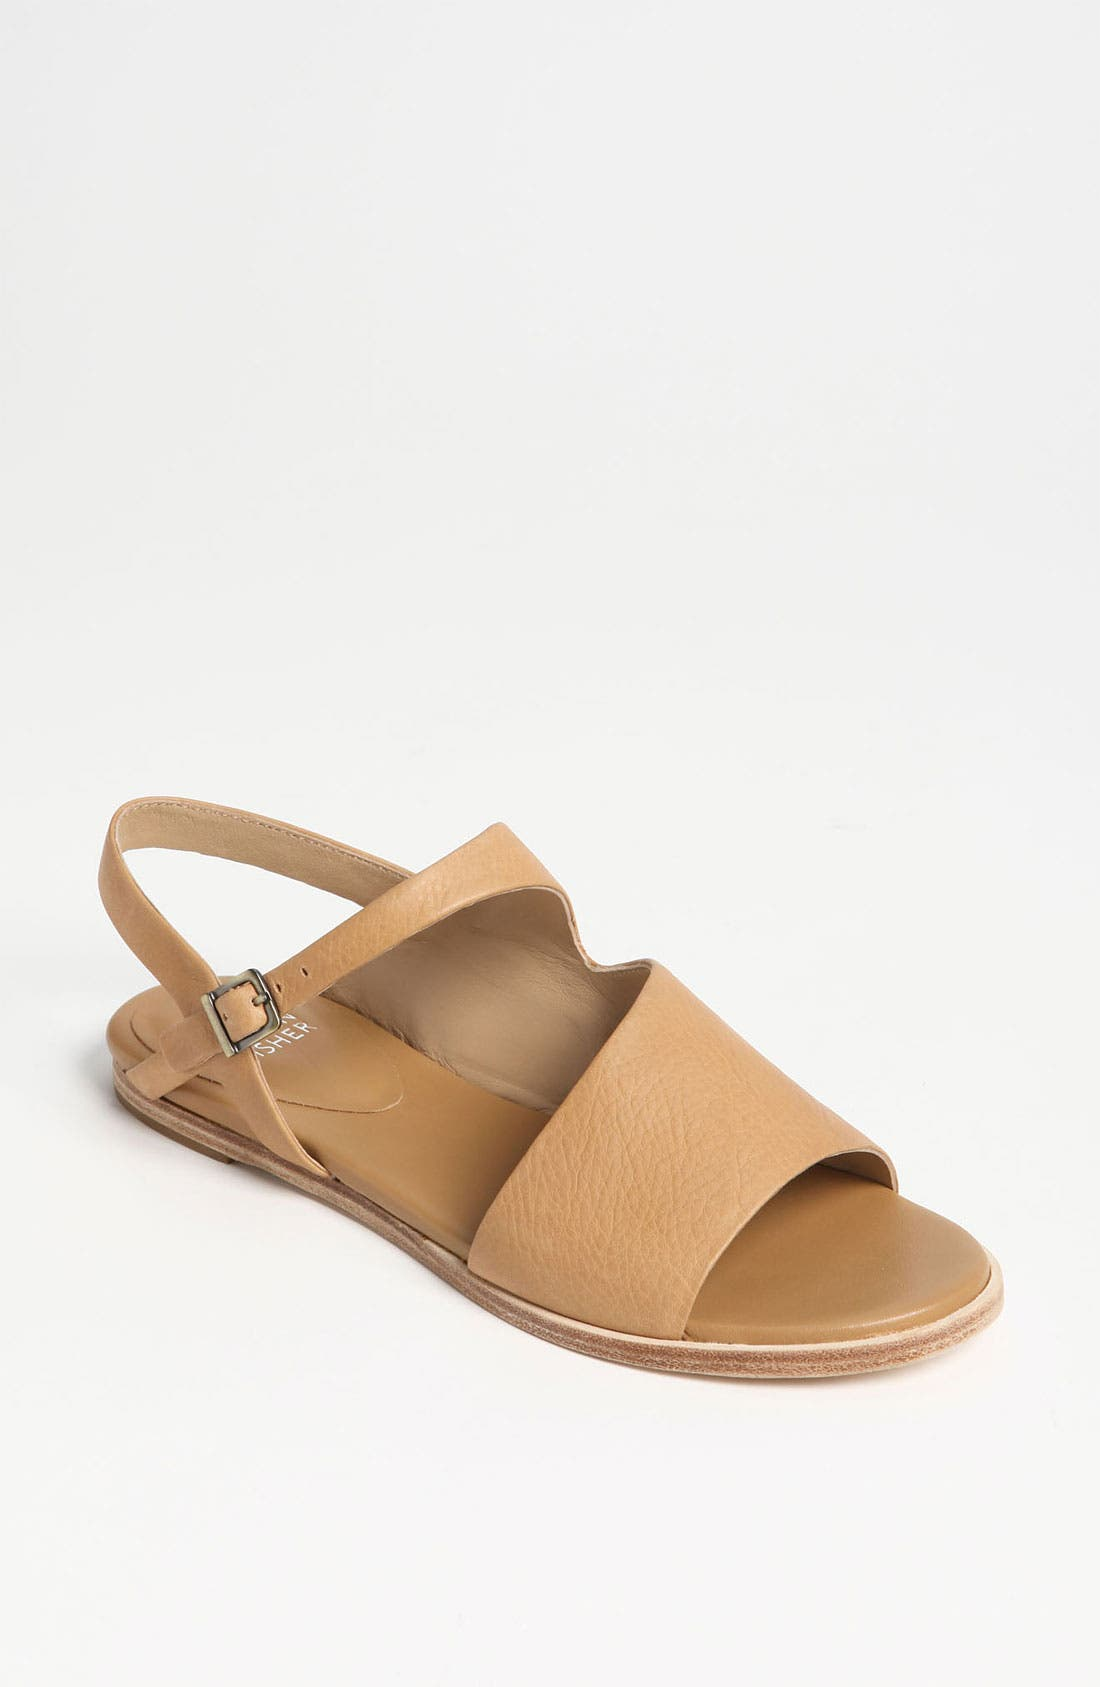 Alternate Image 1 Selected - Eileen Fisher 'Veer' Sandal